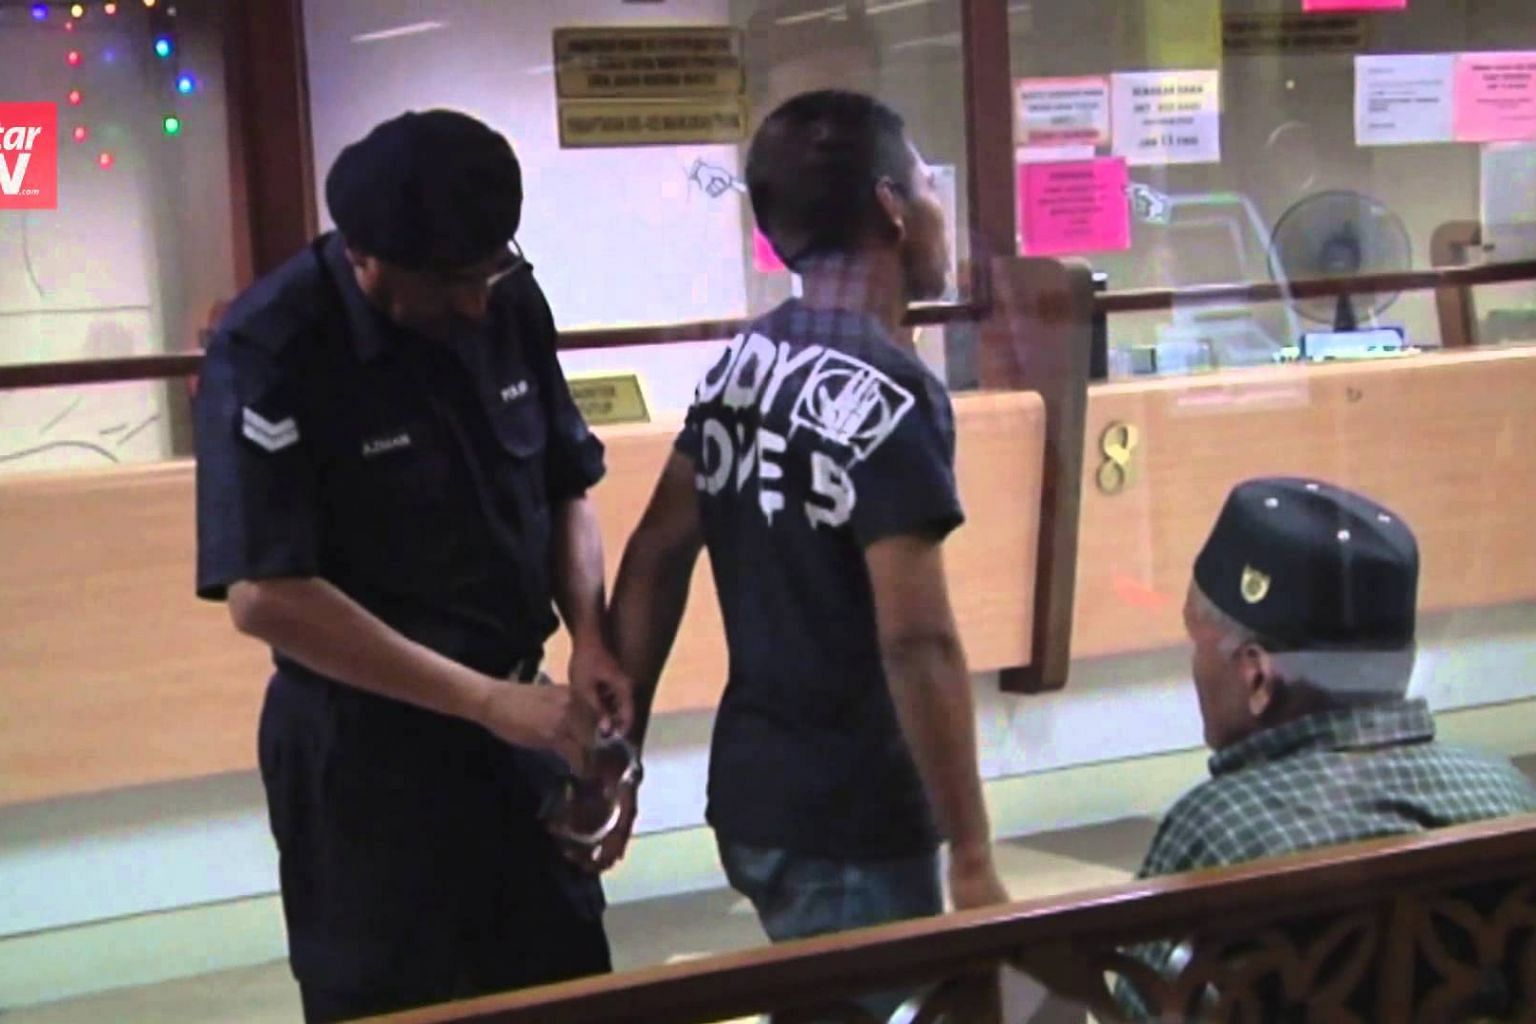 Low Yat theft case: Accused pleads not guilty